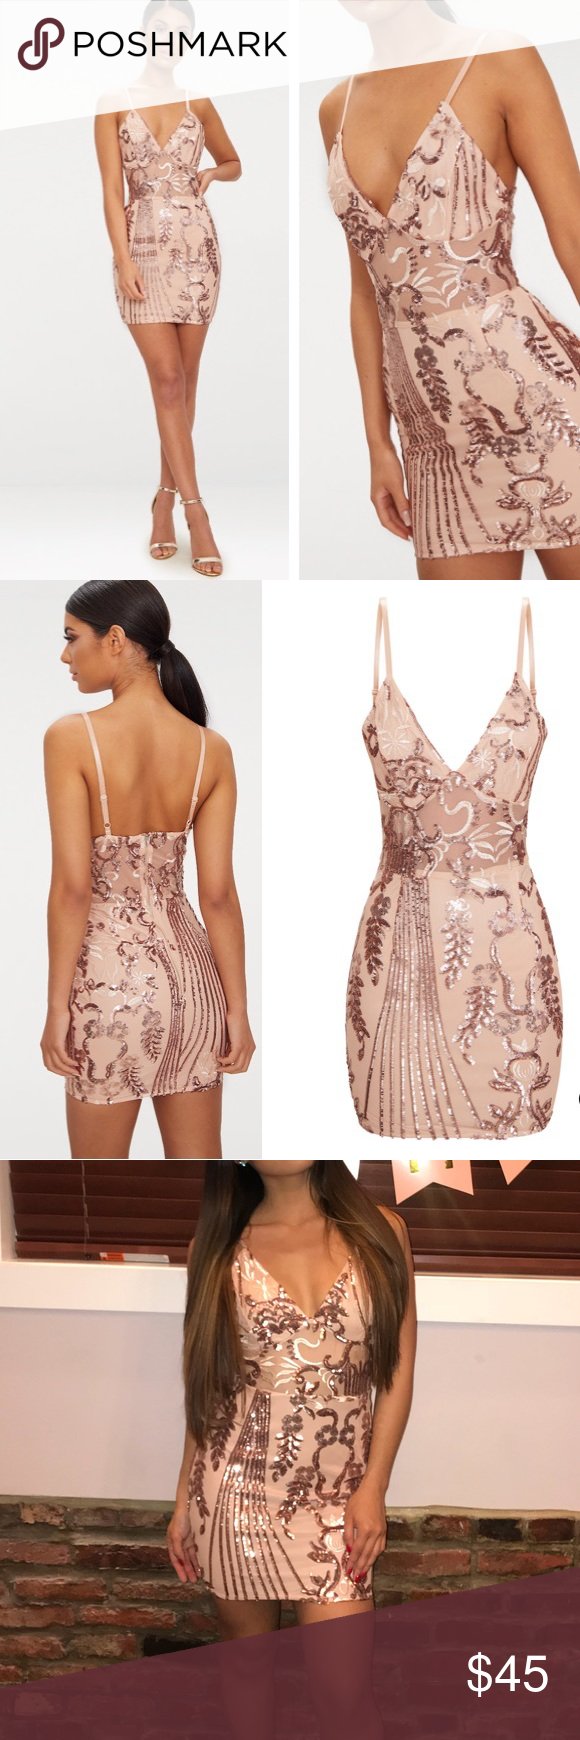 2ec0c568 Rose Gold Sheer Strappy Panel Sequin Bodycon Dress Worn once for a few  hours and received so many compliments. Great birthday dress. From  PrettyLittleThings ...